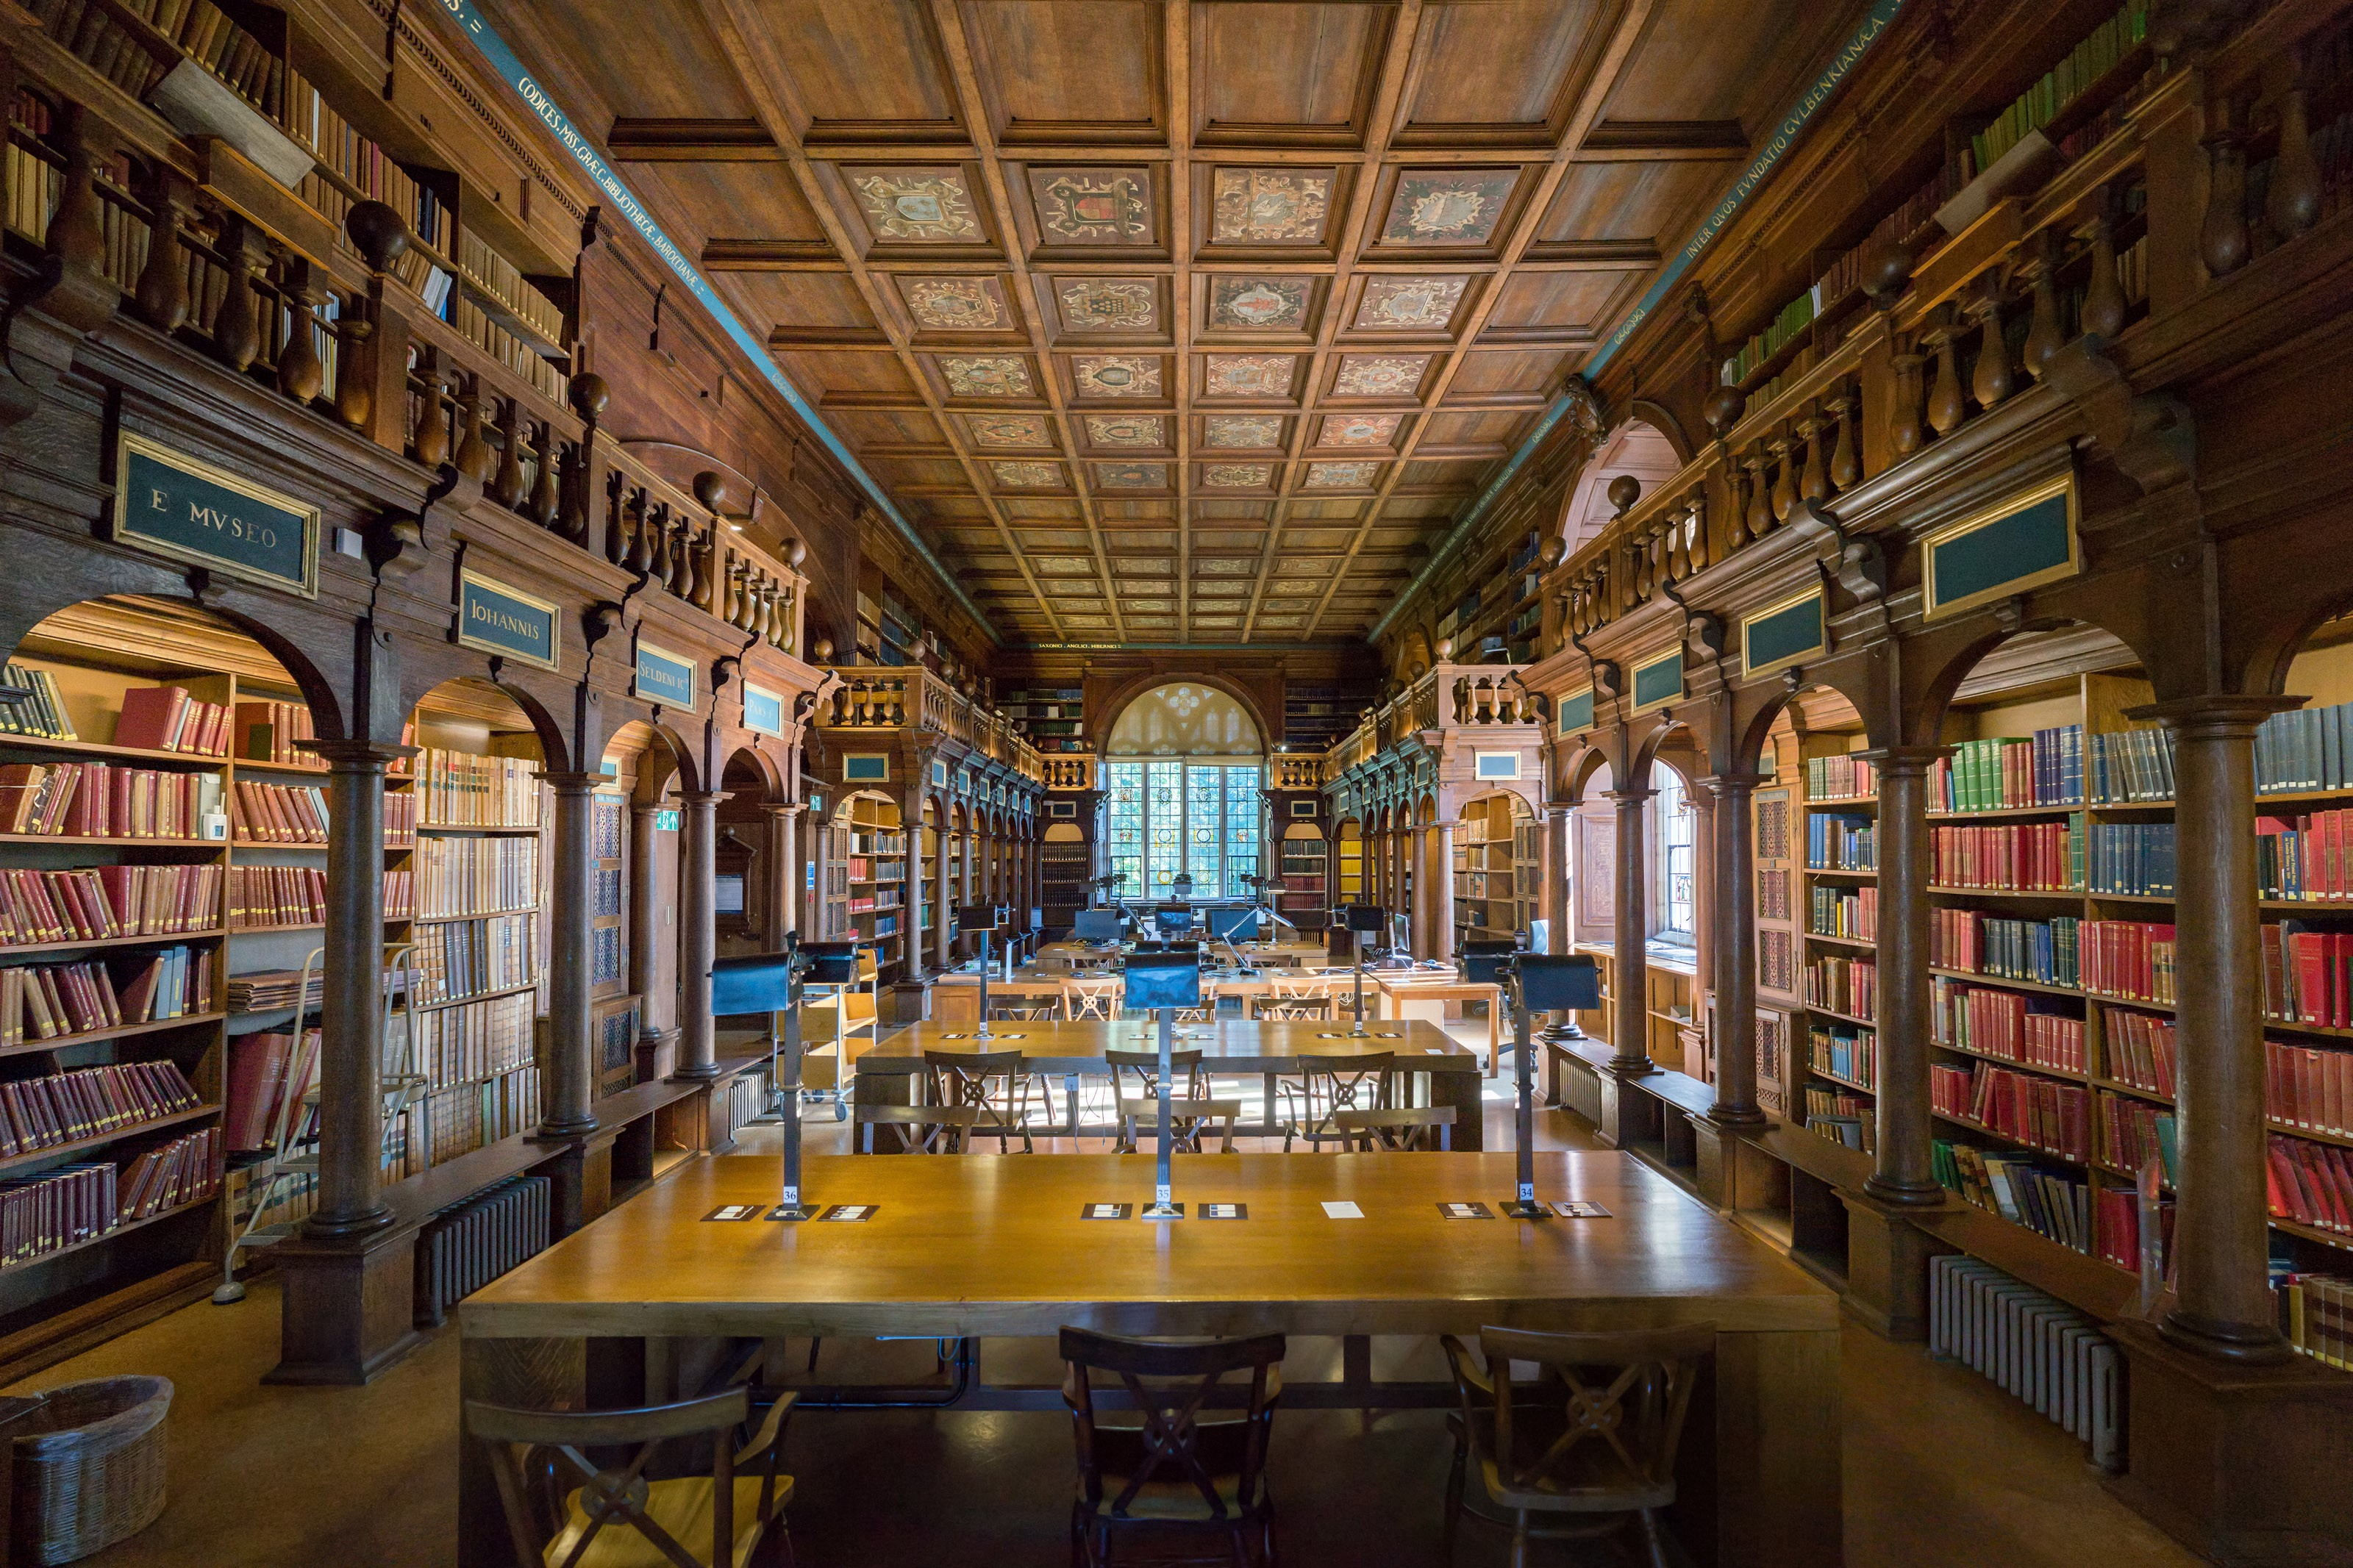 Inside the Bodleian at Oxford's Library